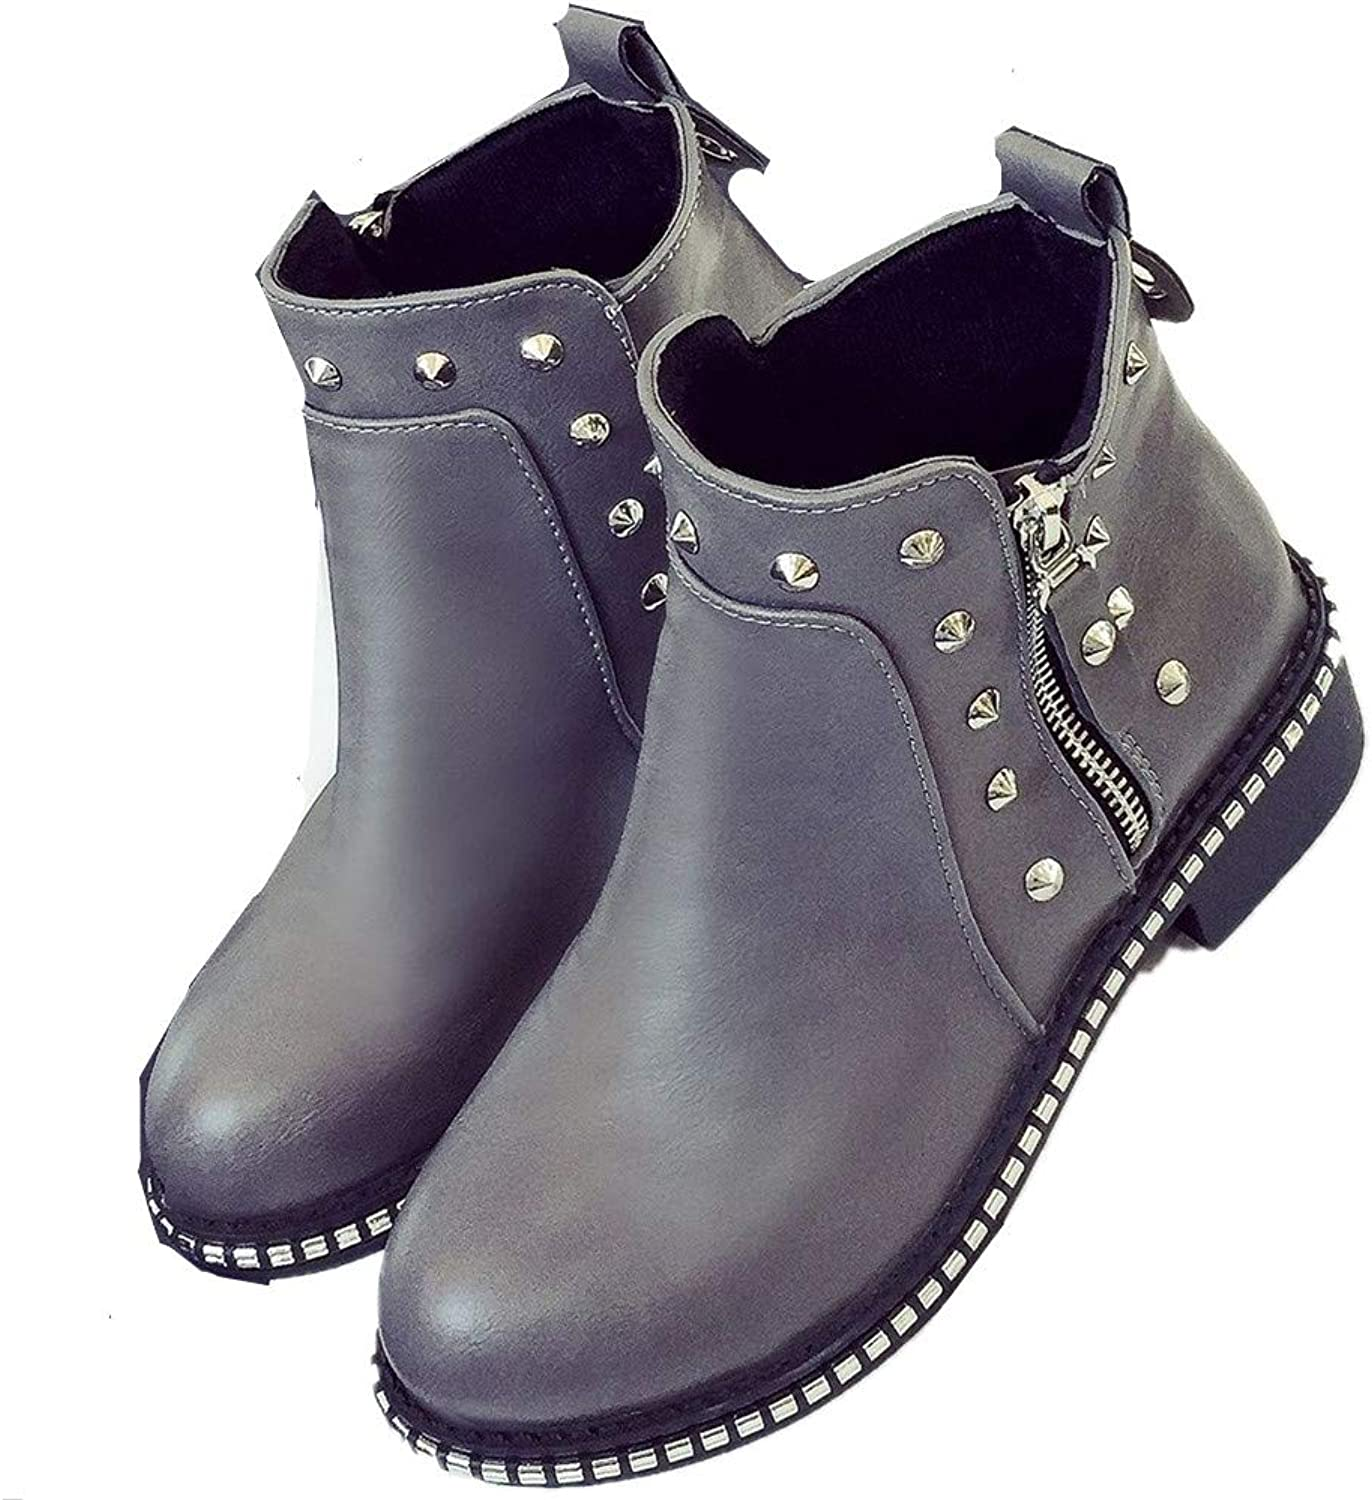 Super frist Winter Ankle Bootie with Women's Boots Martin Boots Chelsea Boots Side Zipper